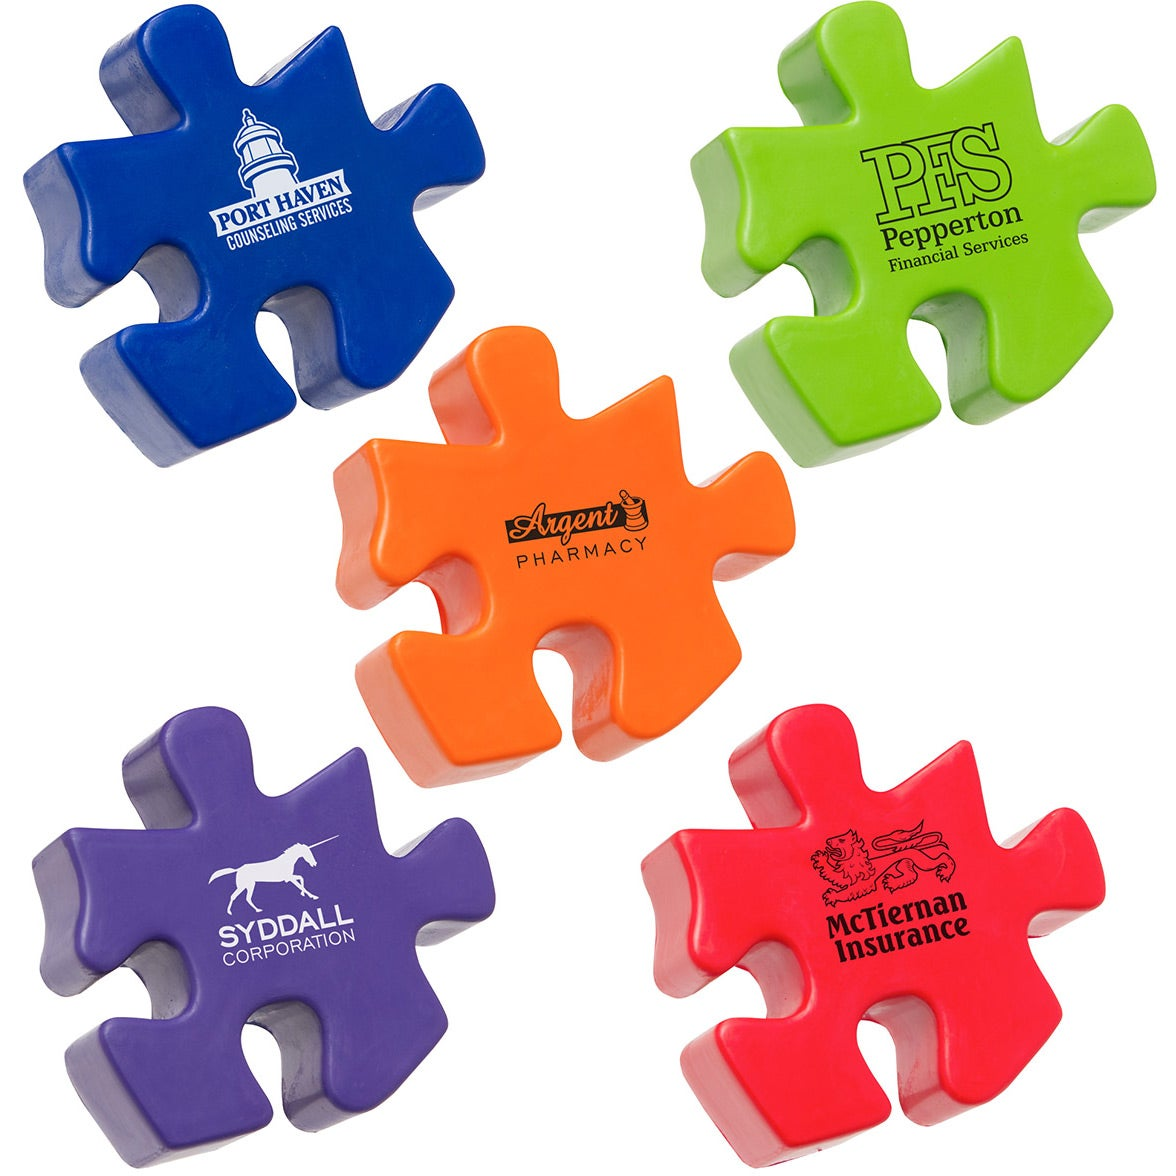 Group Photo Puzzle Piece Stress Ball With Your Slogan